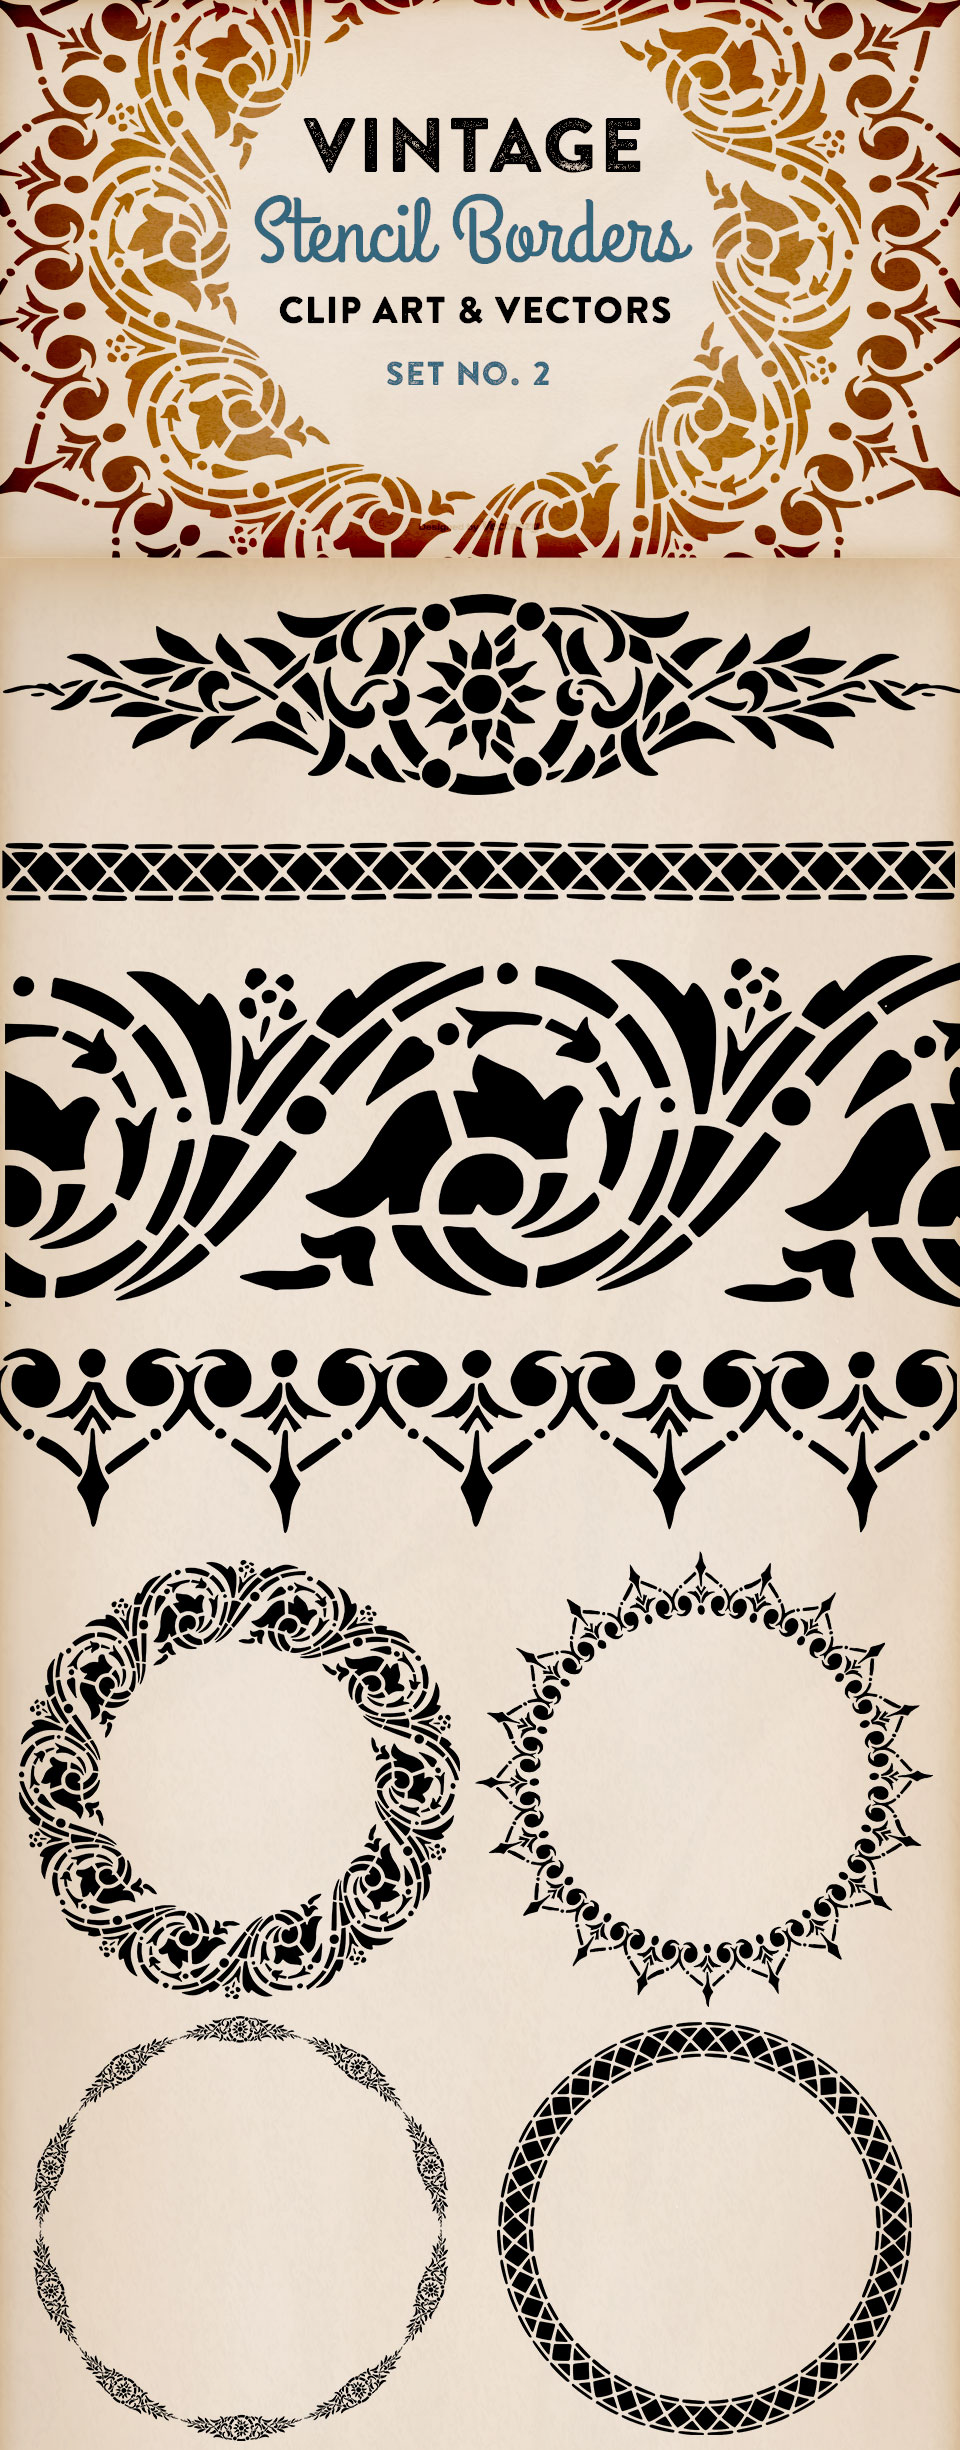 8 More Beautiful Border Clip Art Images Sourced from Vintage Stencils